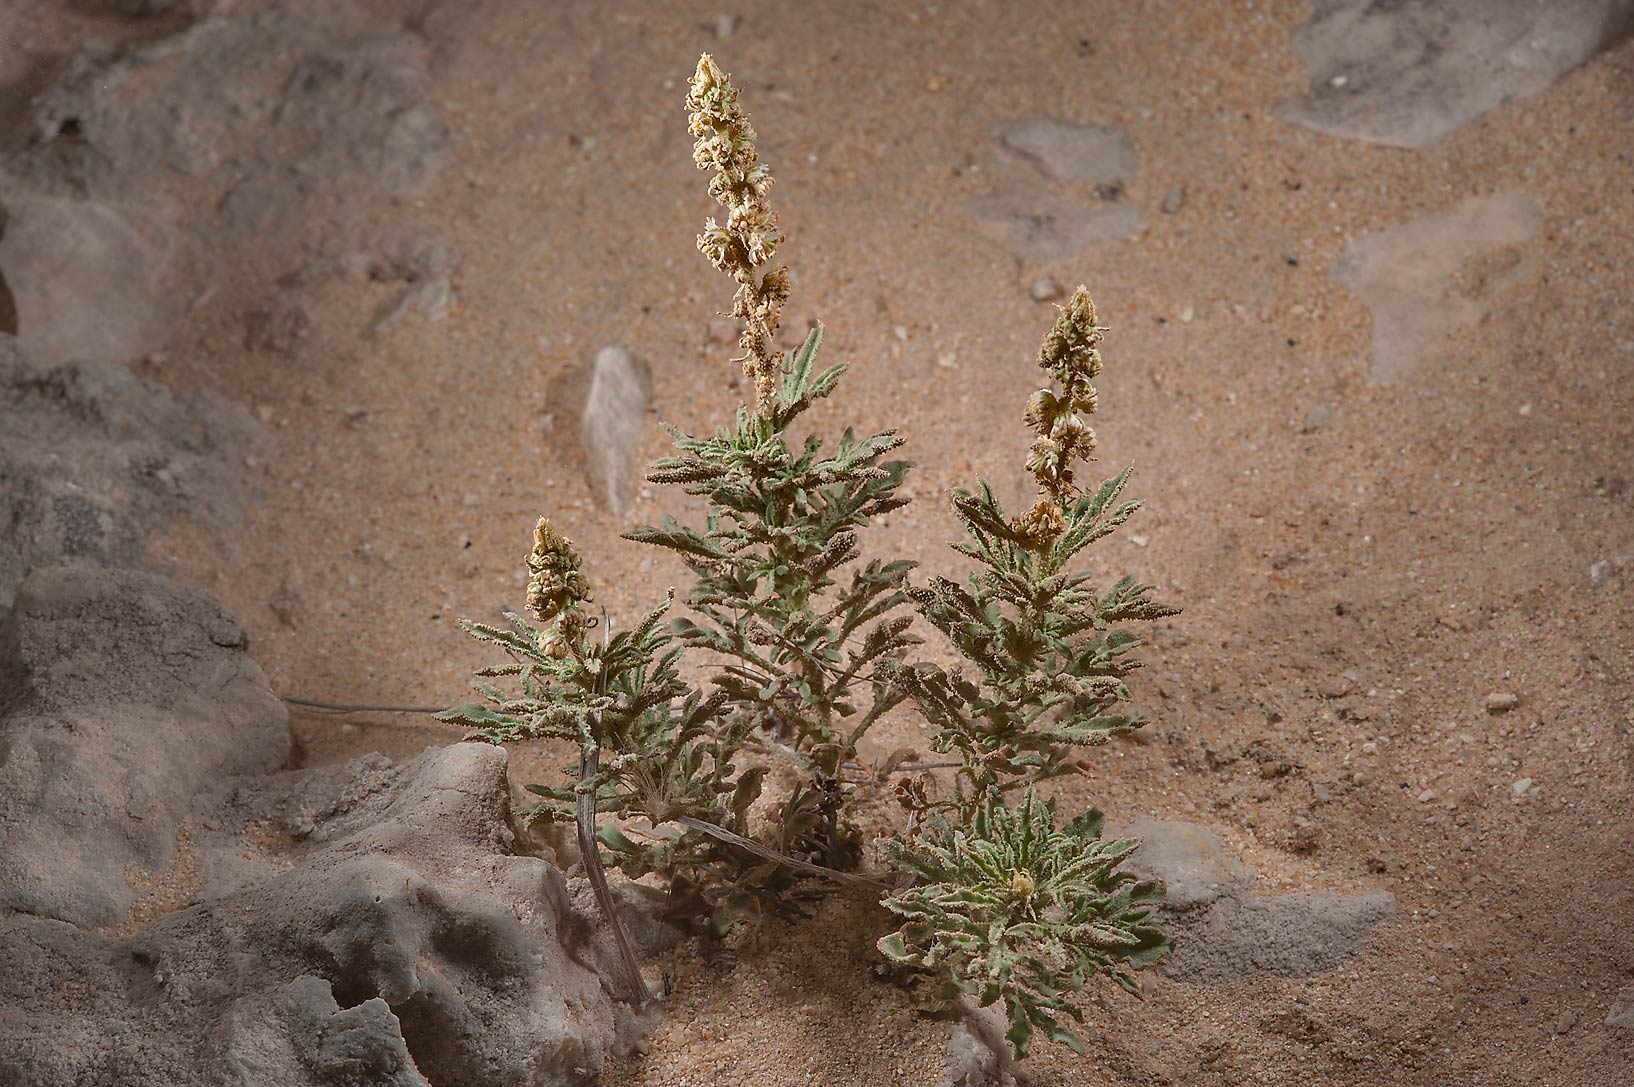 Reseda muricata (local name showla) in a runnel north from Dukhan. Qatar